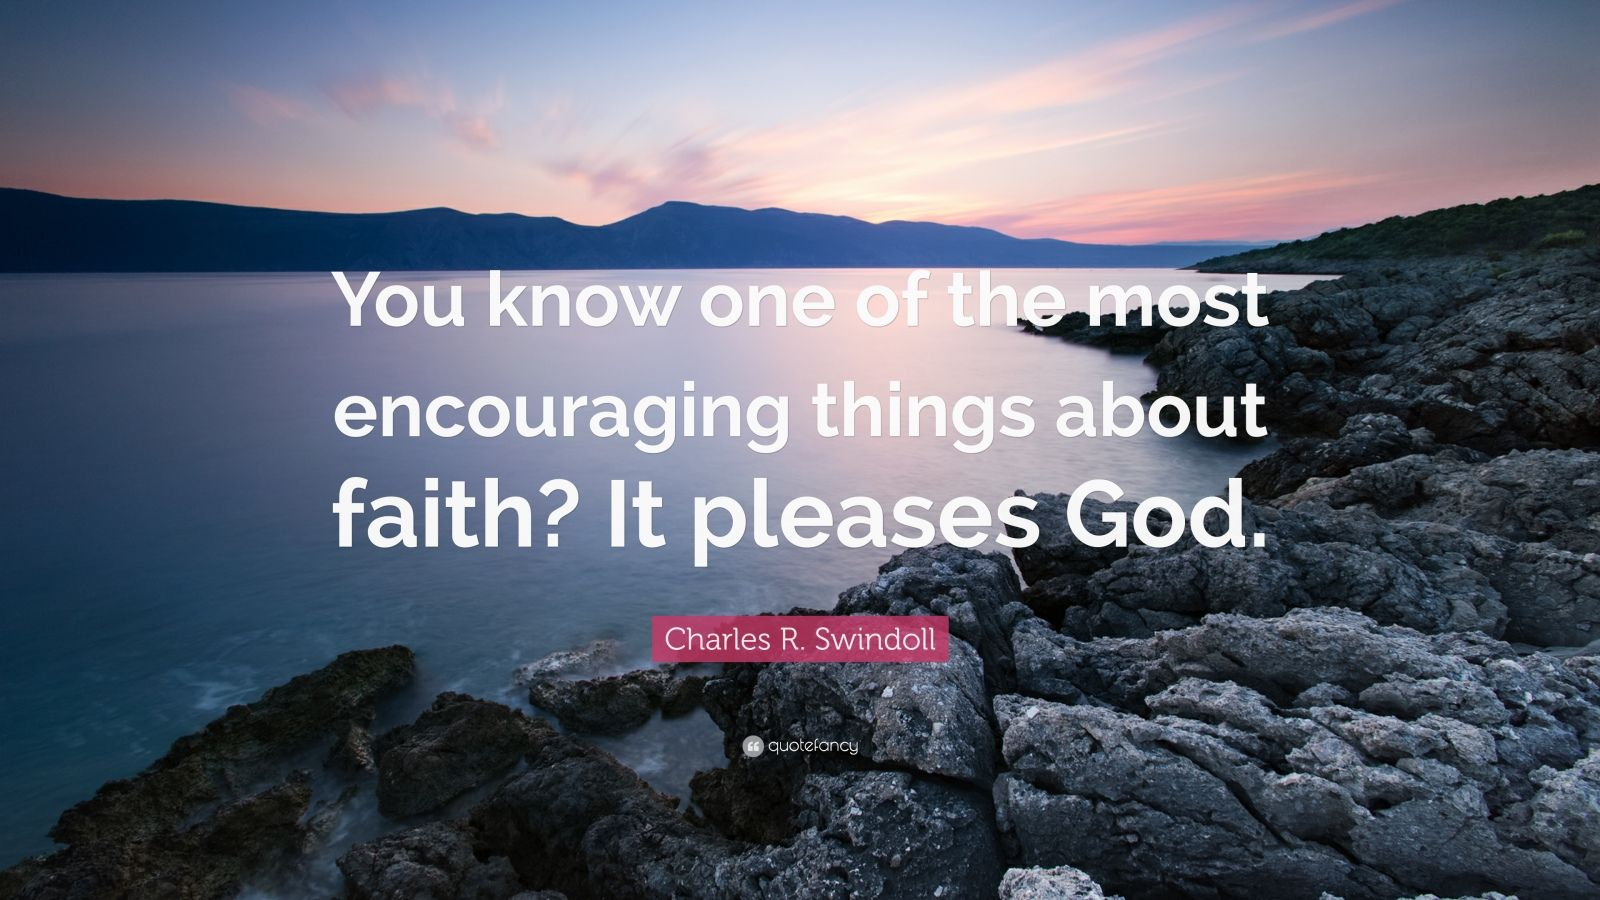 """Charles R. Swindoll Quote: """"You know one of the most encouraging things about faith? It pleases God."""""""